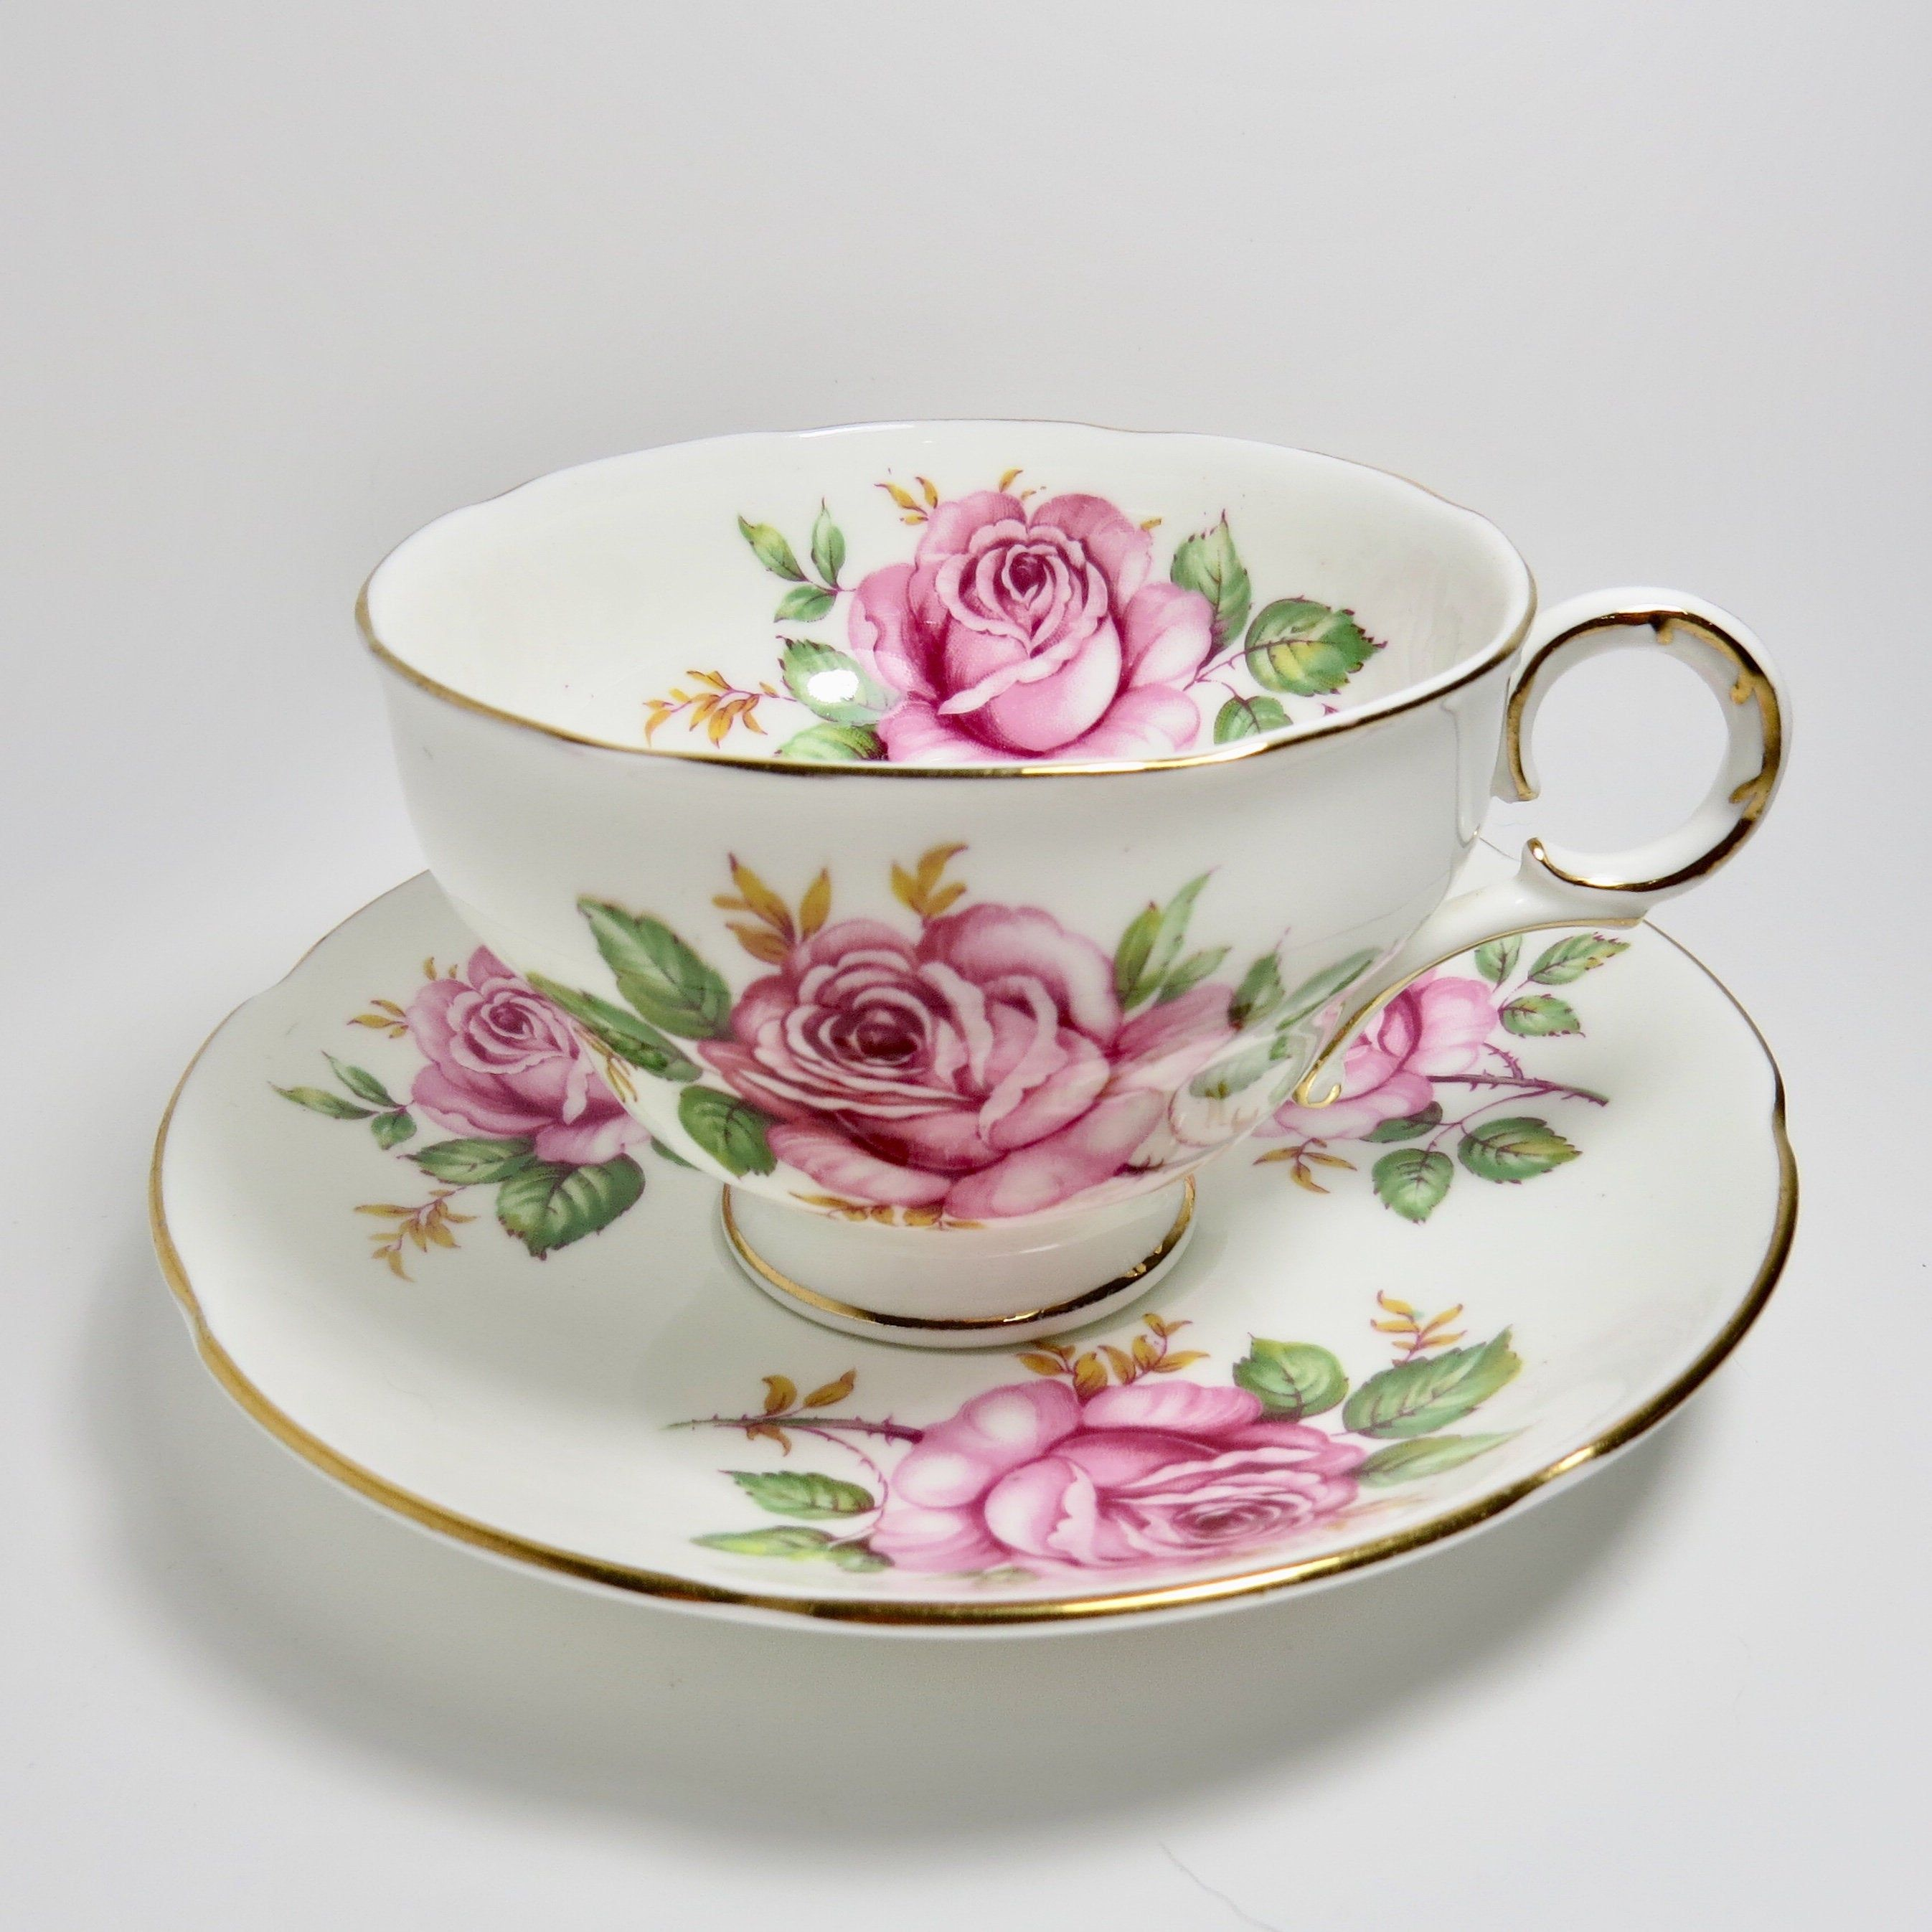 Vintage Adderley Pink Roses Tea Cup and Saucer Set, Bone China #teacups